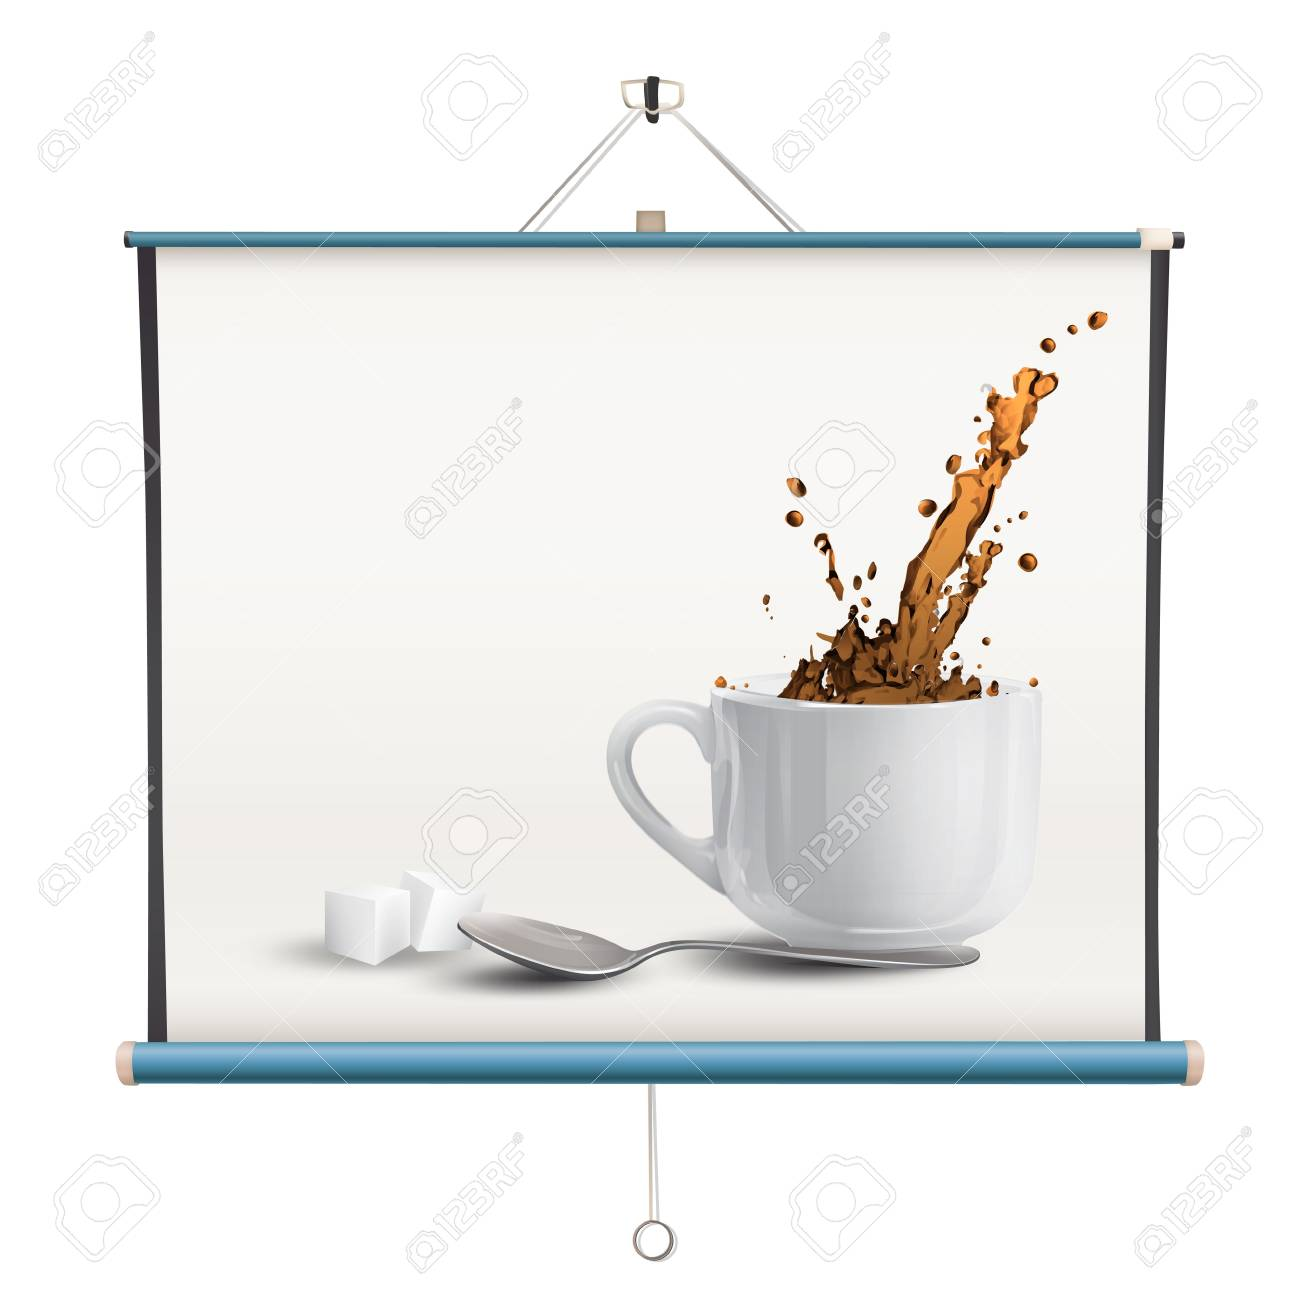 Realistic coffee printed on projector screen. isolated  design. Stock Vector - 19198325